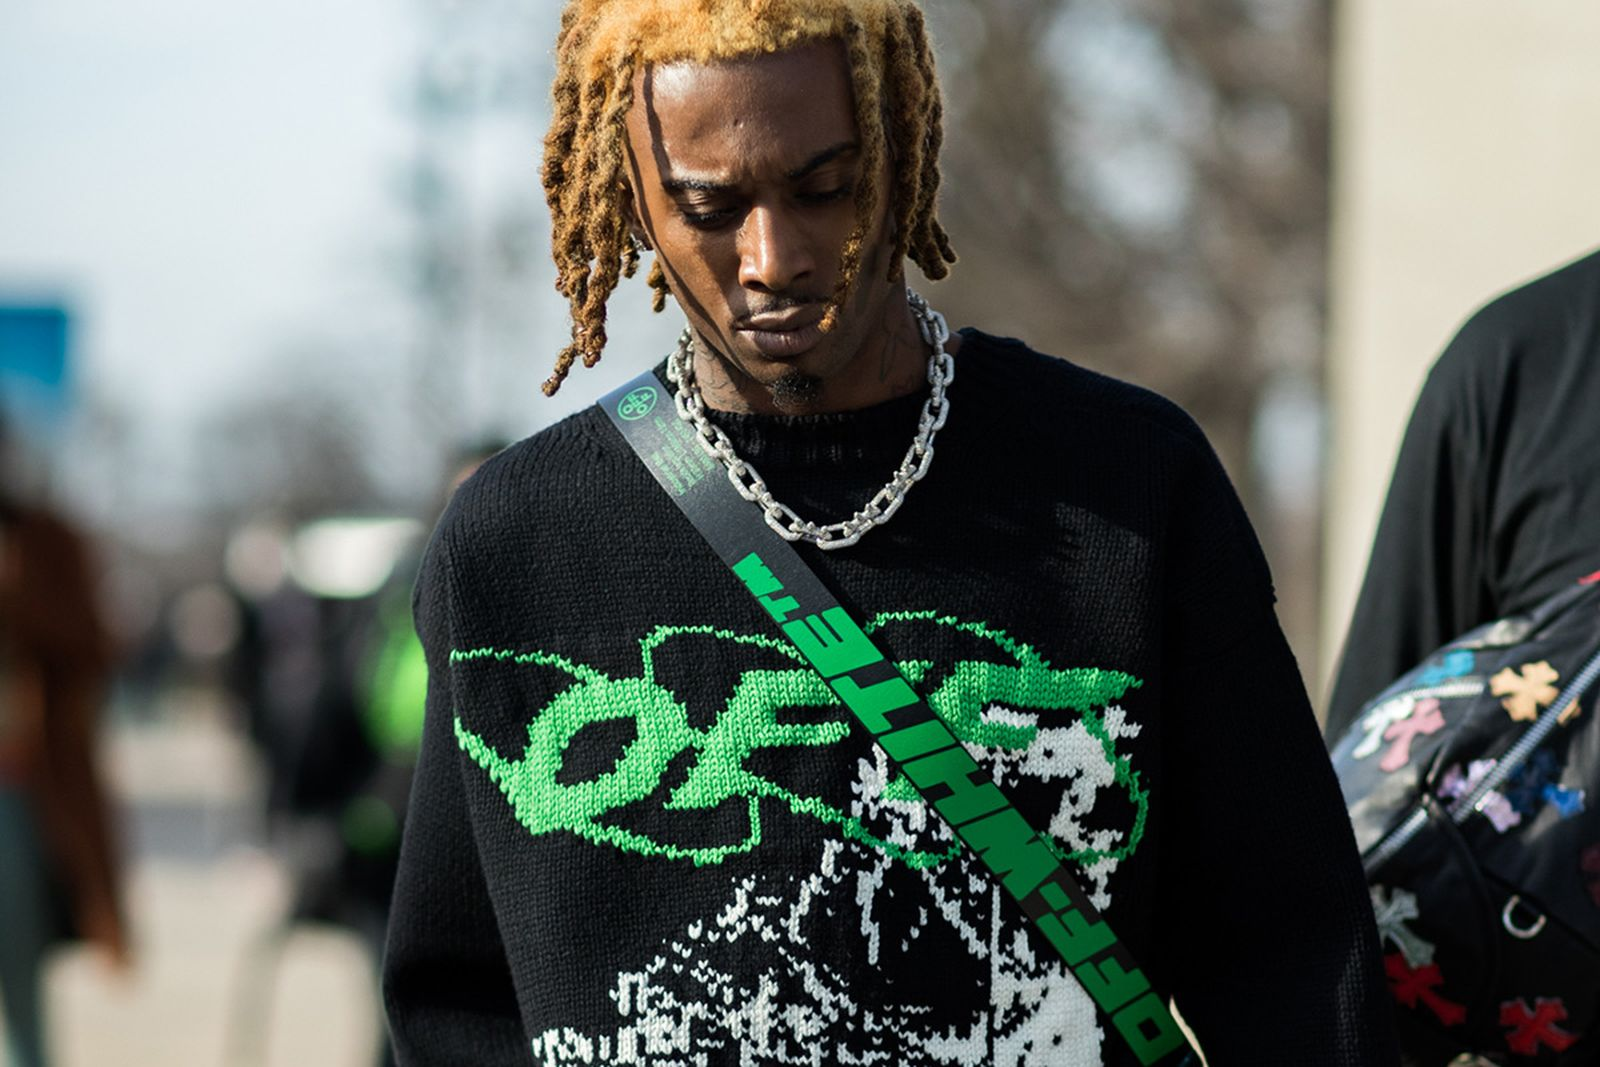 Playboi Carti in Off-White Sweater At Paris Fashion Week